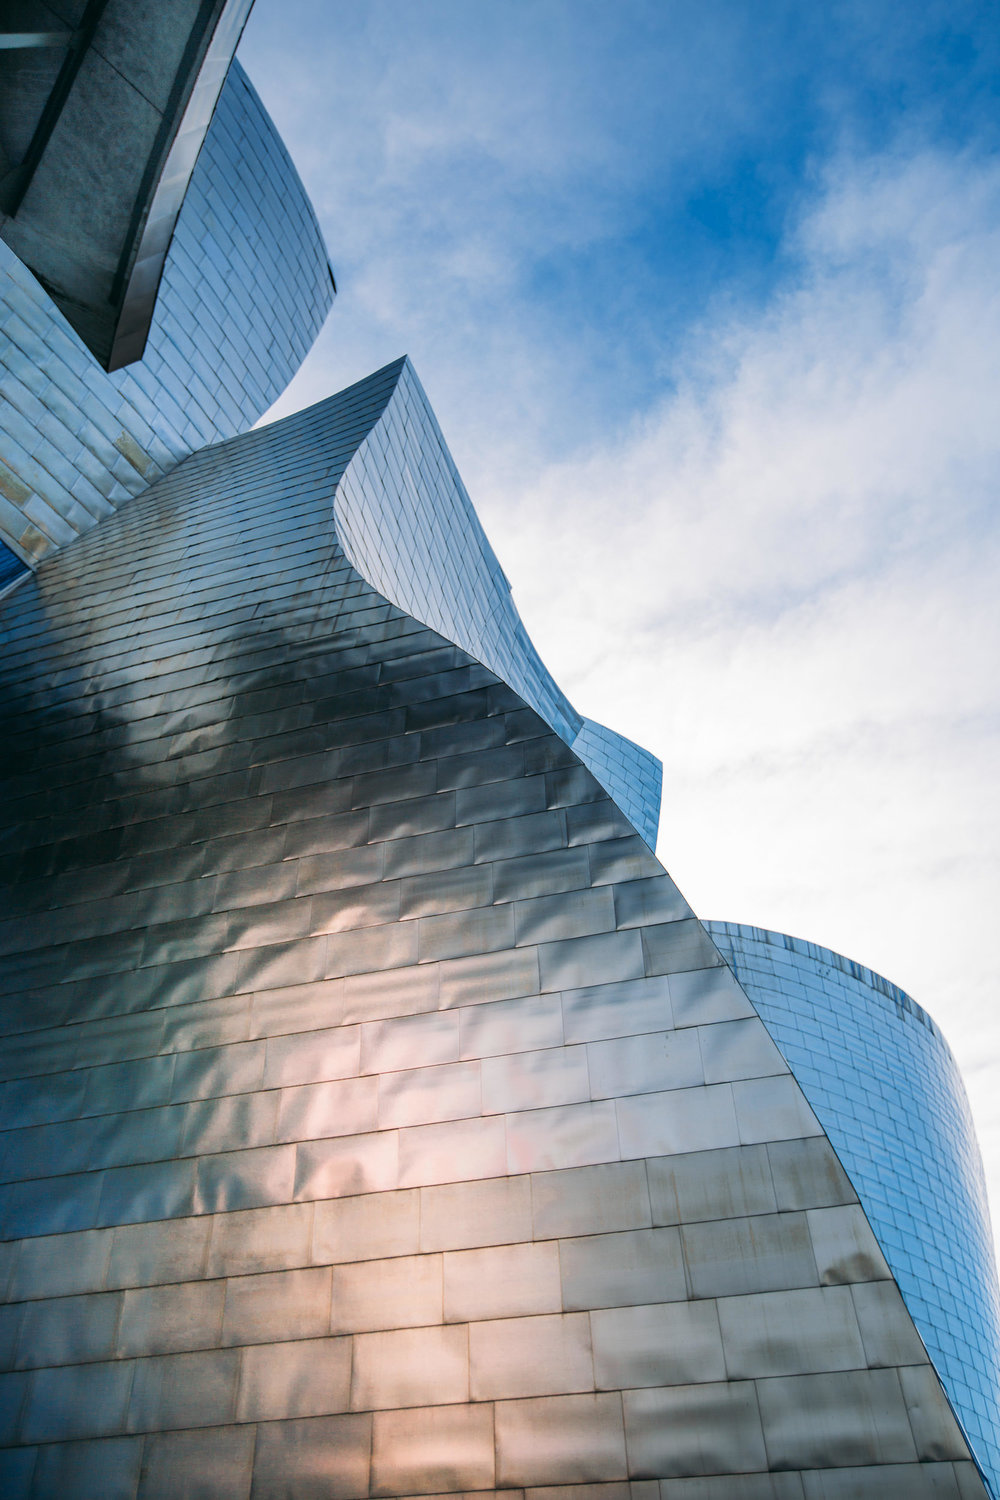 Titanium Facade of the Guggenheim in Bilbao